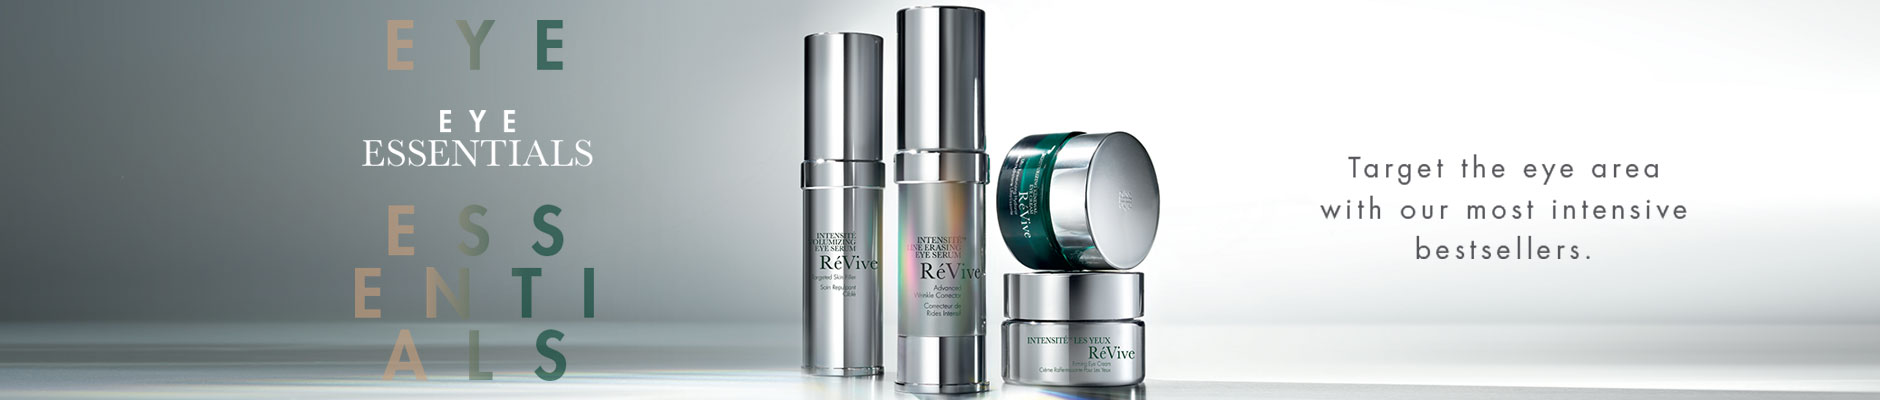 Eye Essentials - Target the eye area with our most intensive bestsellers.